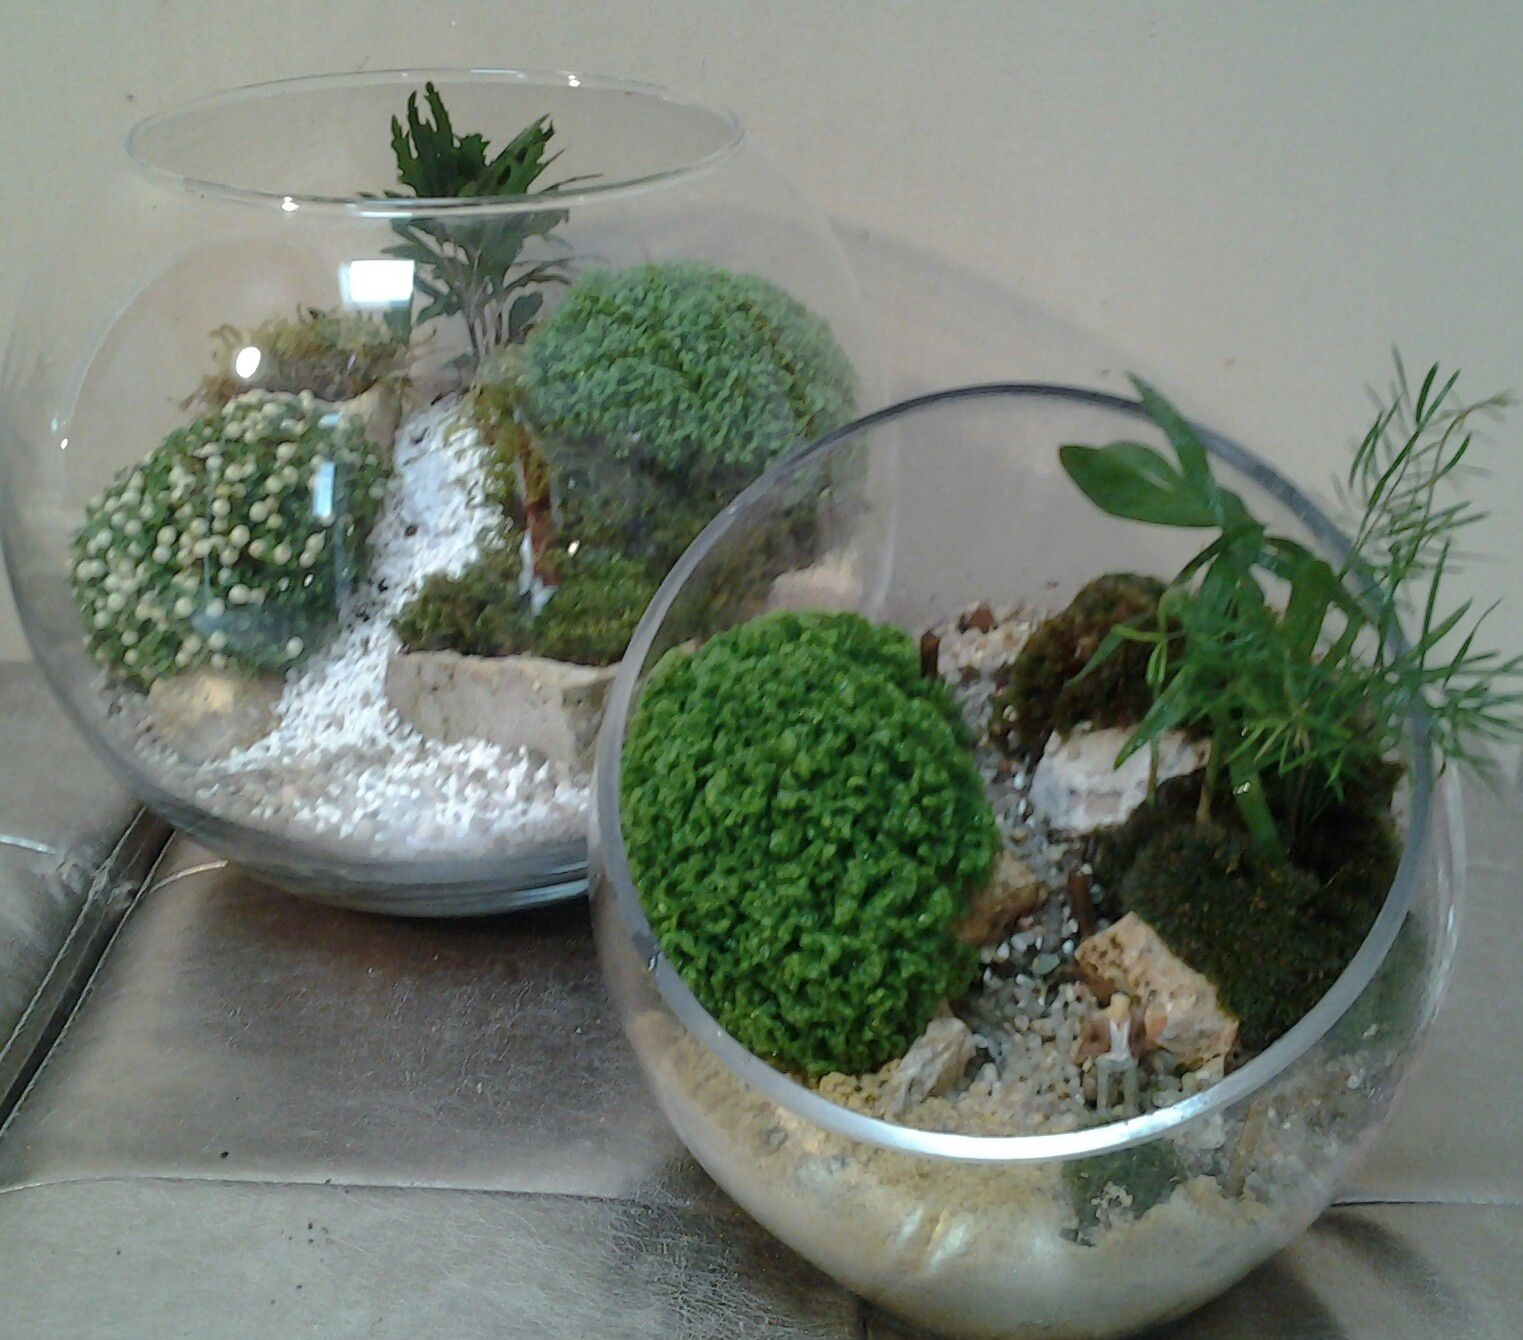 micro jardins de mousse min ral et vegetal l 39 art du terrarium cr atif. Black Bedroom Furniture Sets. Home Design Ideas